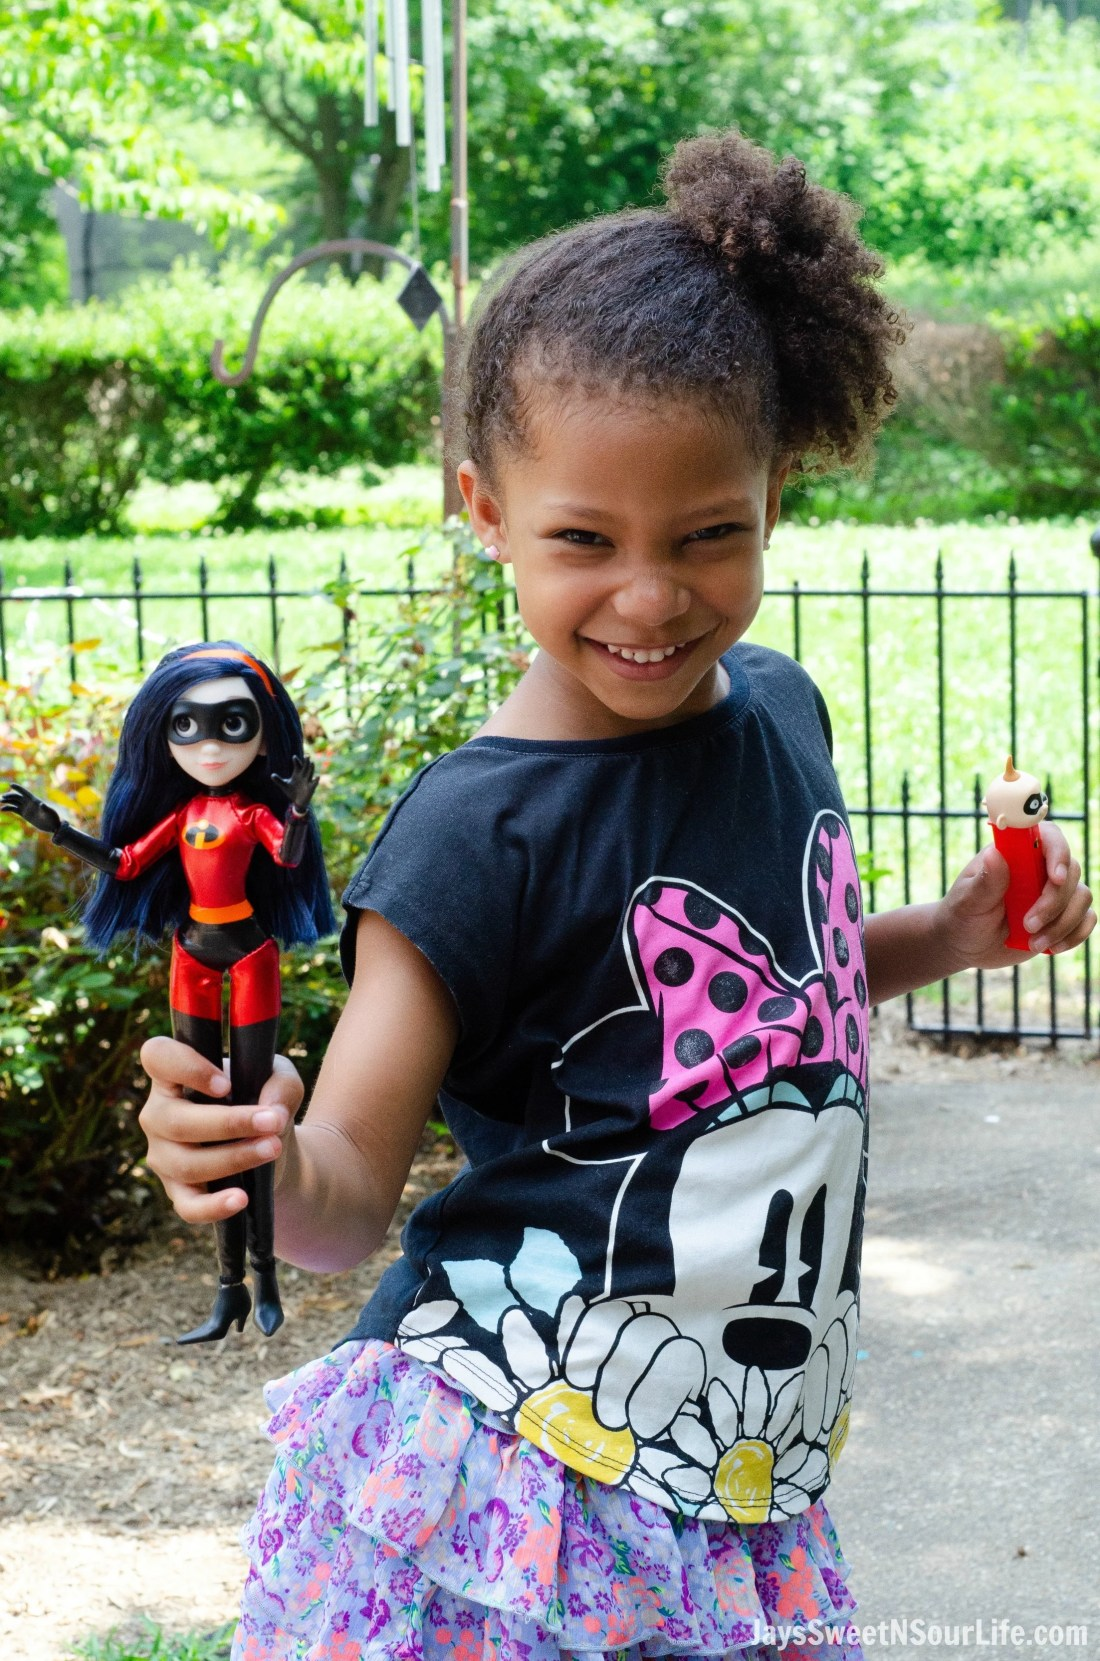 African American Girl Posing With Incredibles 2 Violet Action Figure. New Disney Pixars Incredibles 2 Toys + More | Incredibles 2 Gift Guide